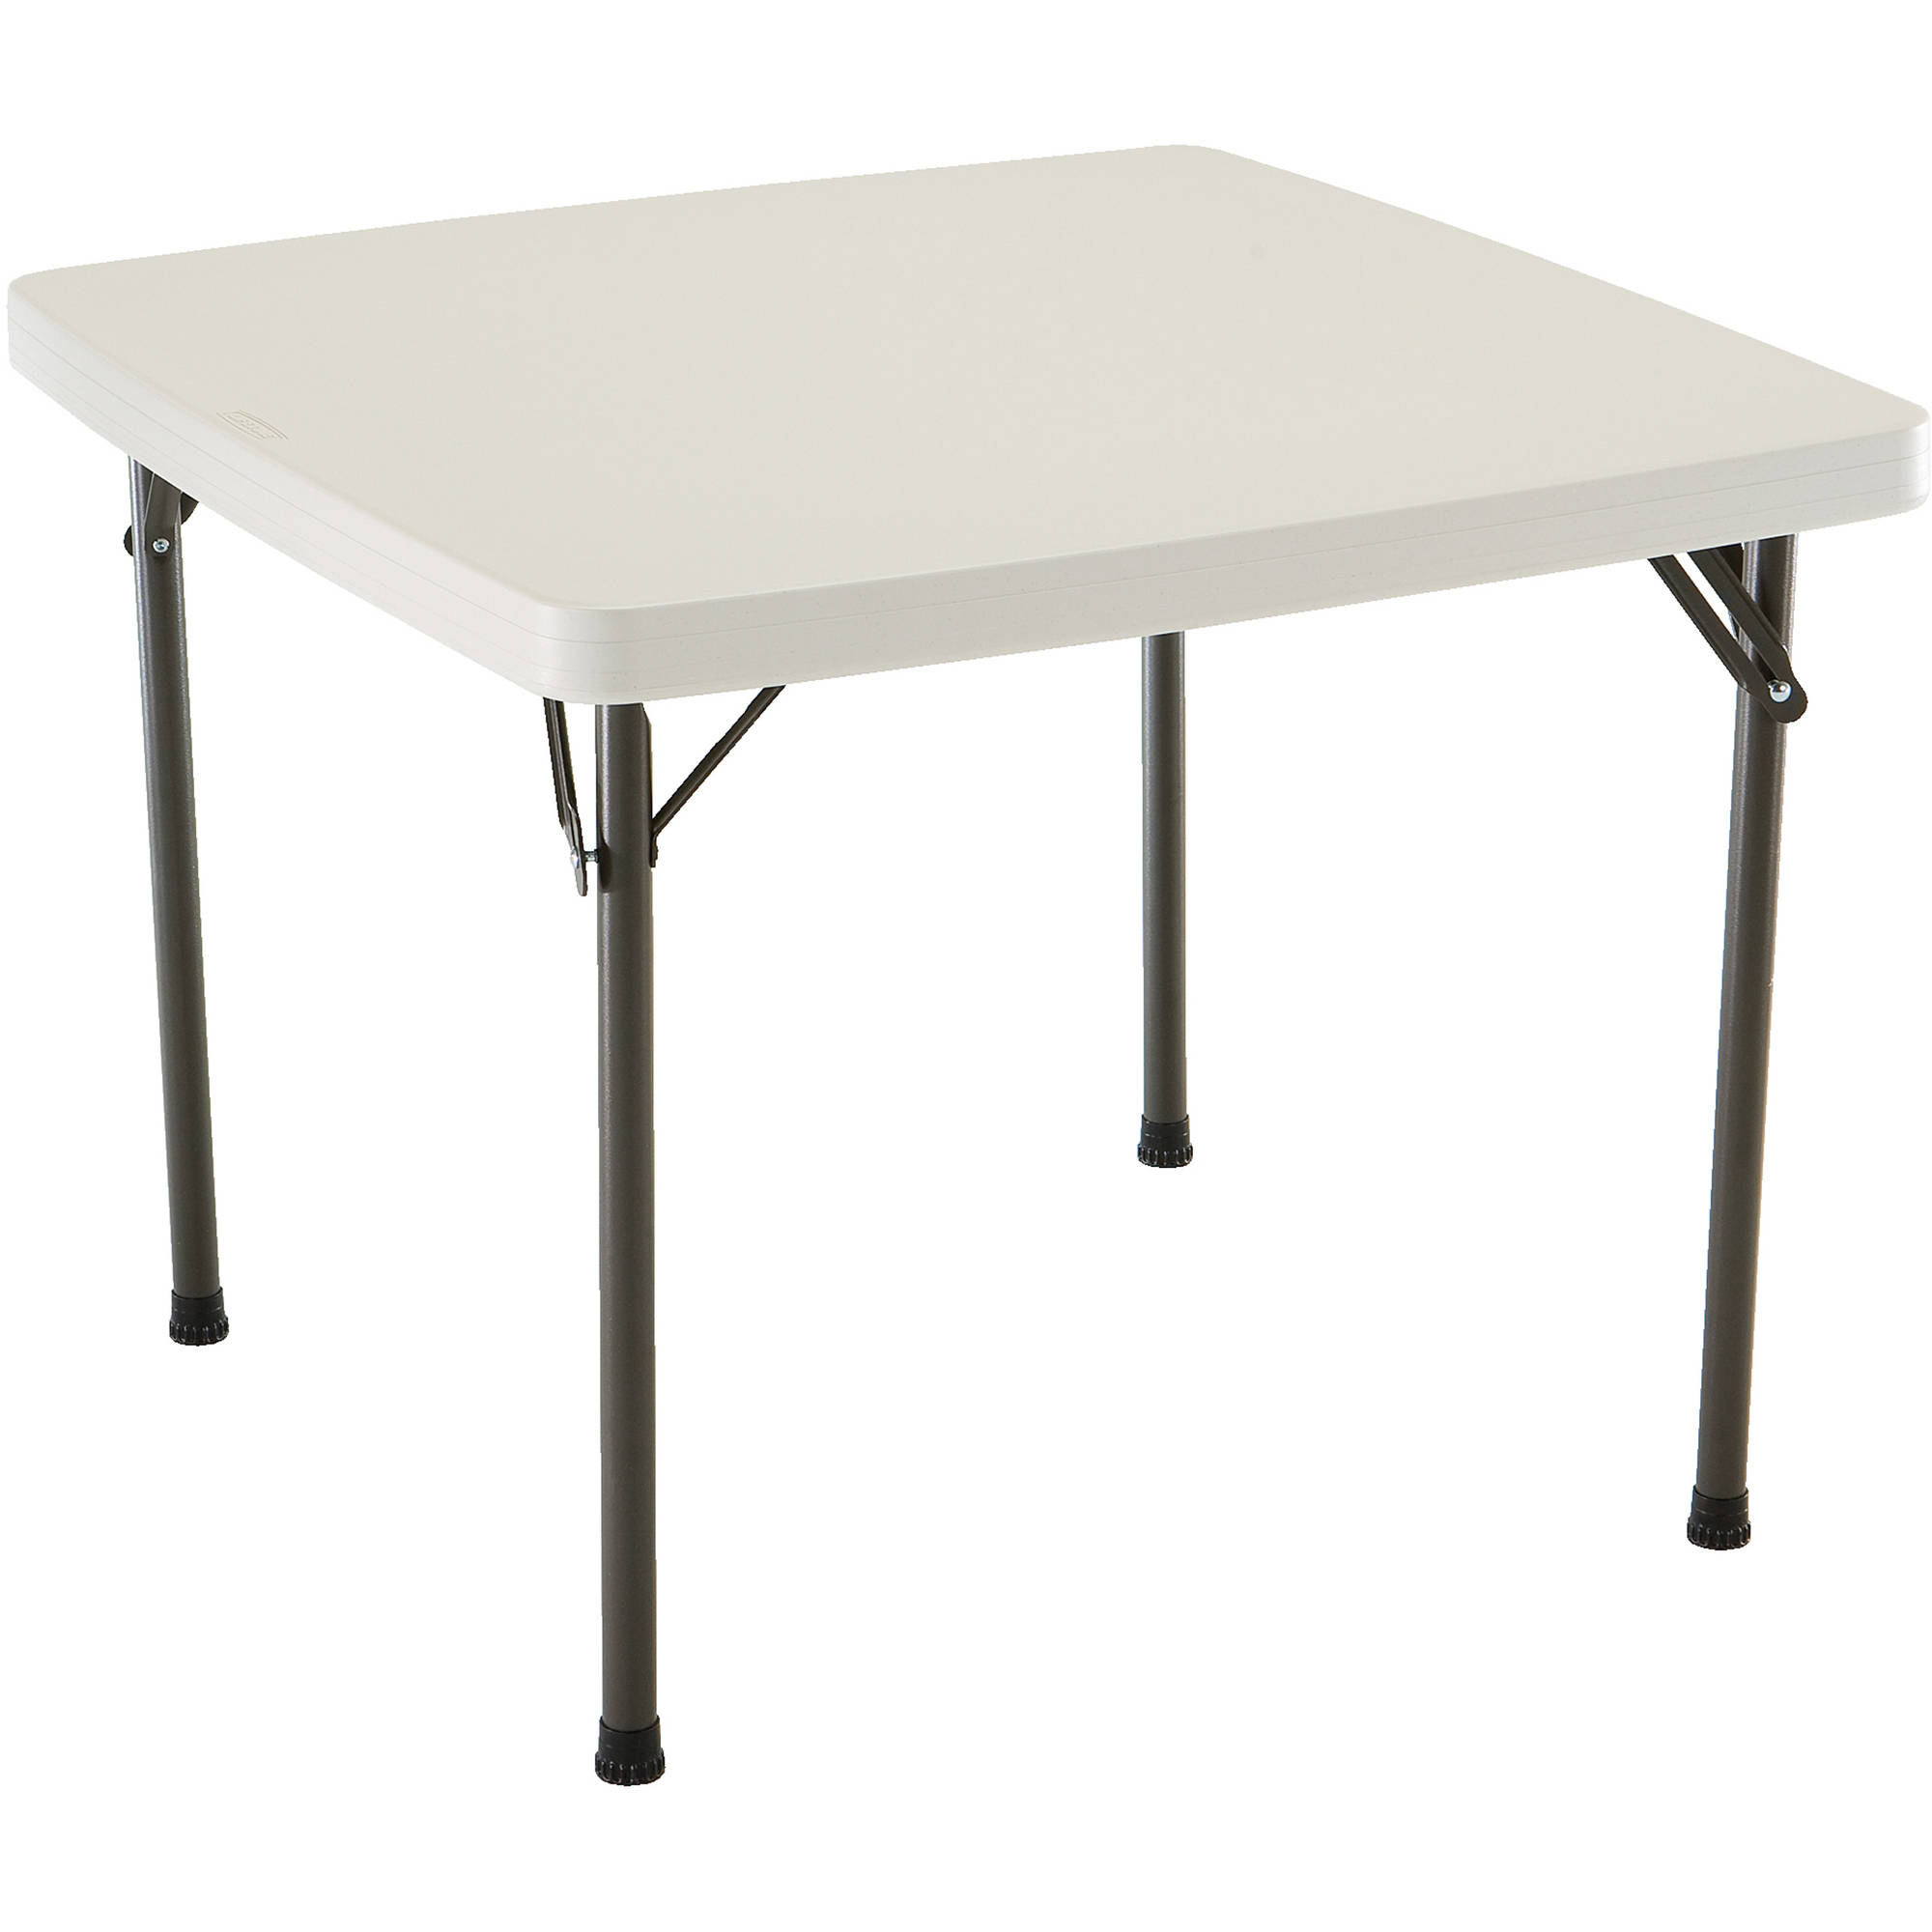 "Lifetime 37"" Square Folding Table Walmart"